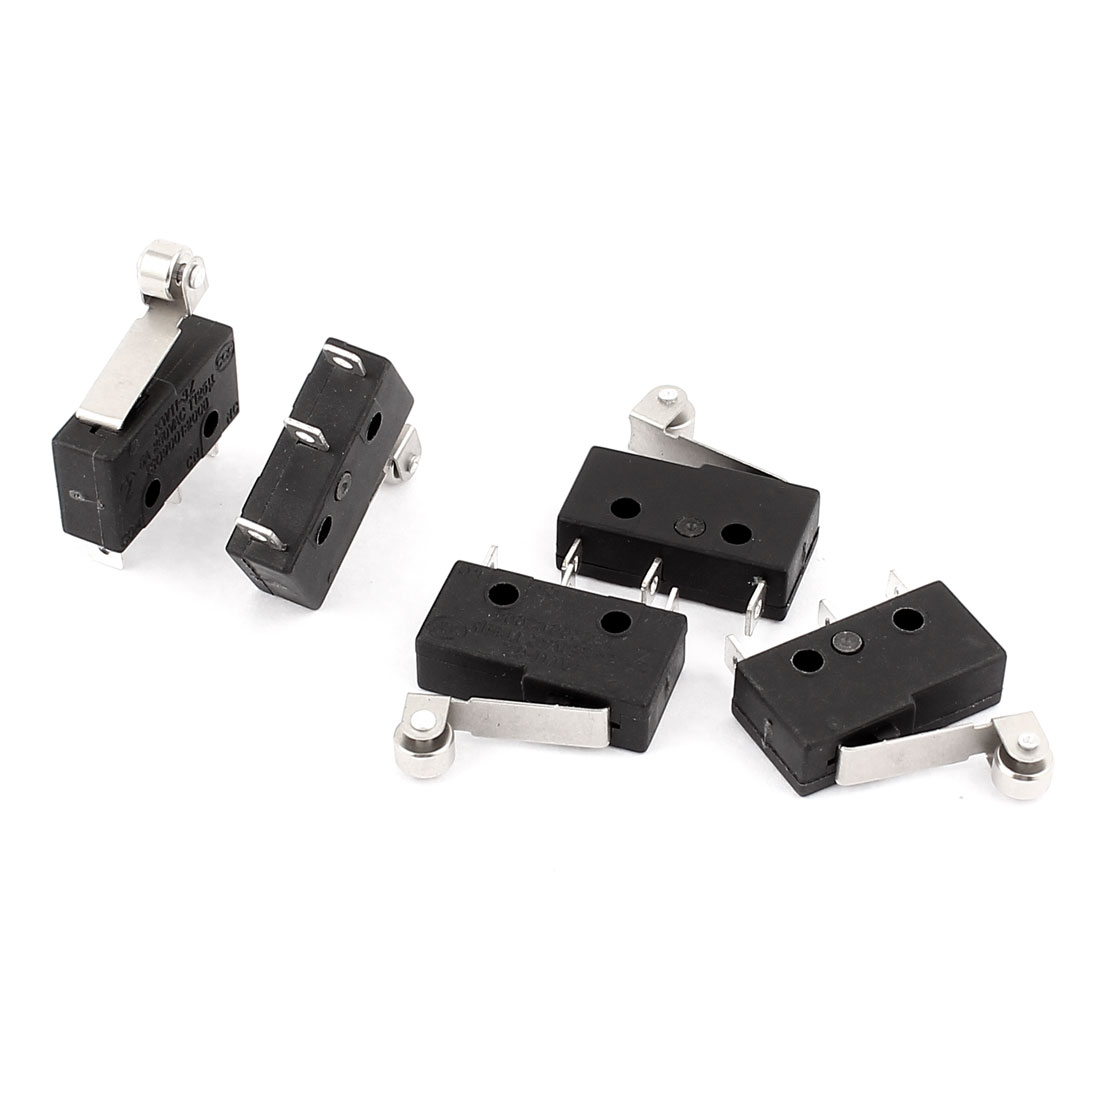 5Pcs KW11-3Z 5A AC 250V 3 Terminals Roller Lever Arm Micro Switches